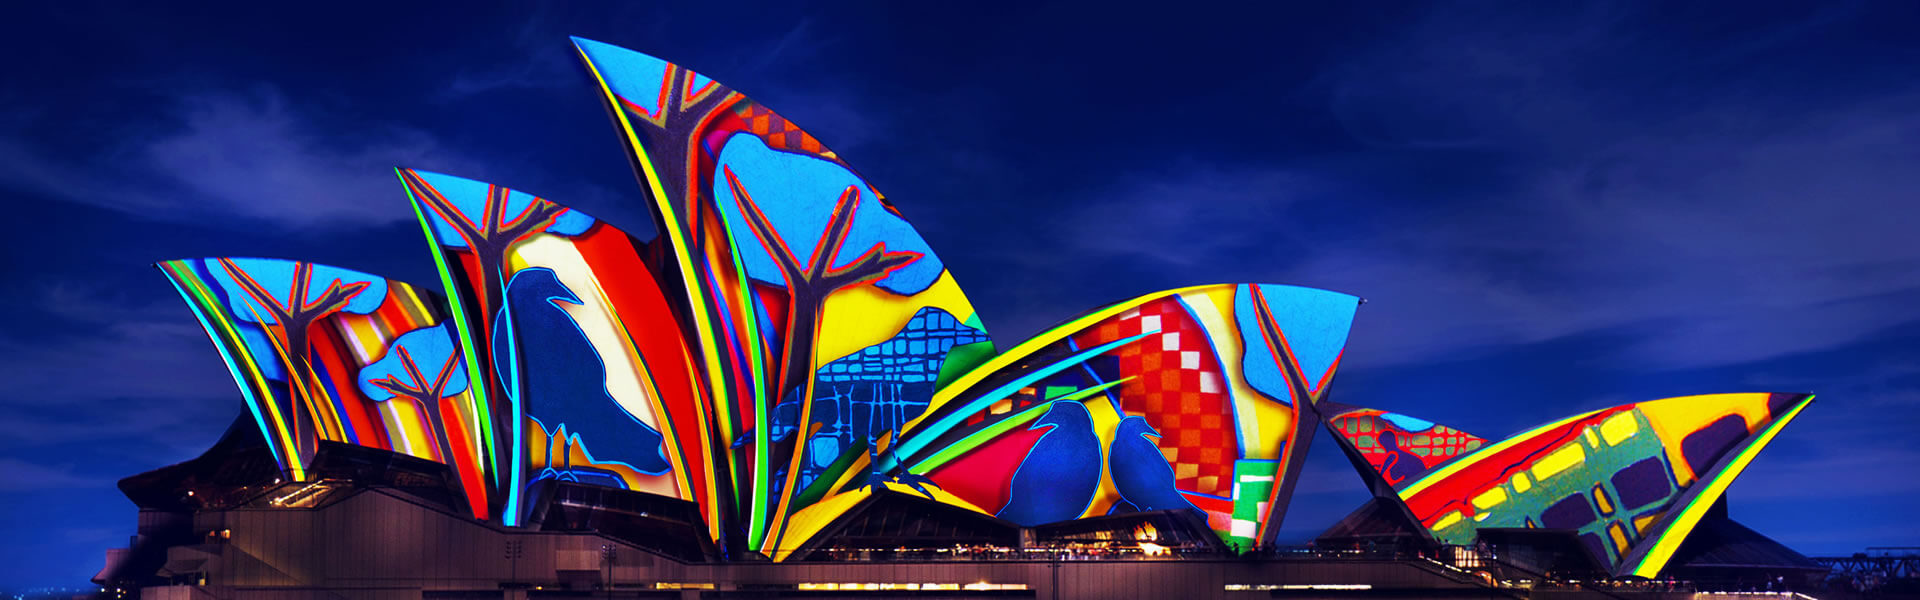 harbour-spirit-vivid-sydney-cruise-opera house